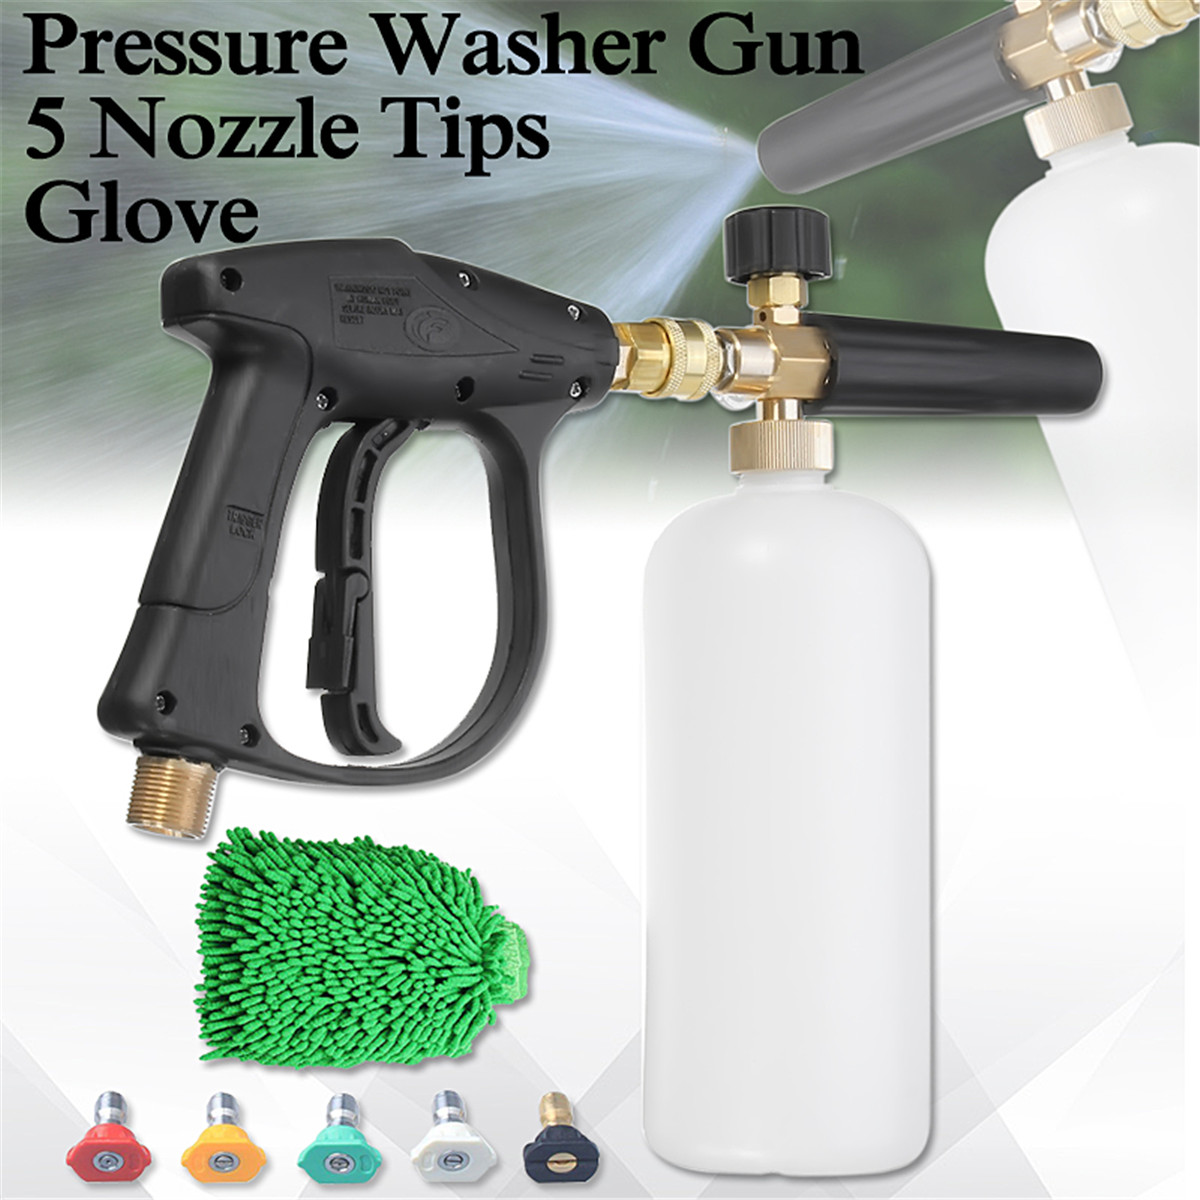 High Pressure Washer Gu n Water Jet 3000 PSI M22 1/4 Inch Snow Suds Lance Cannon 1L Glove 5 Nozzle Tips Set